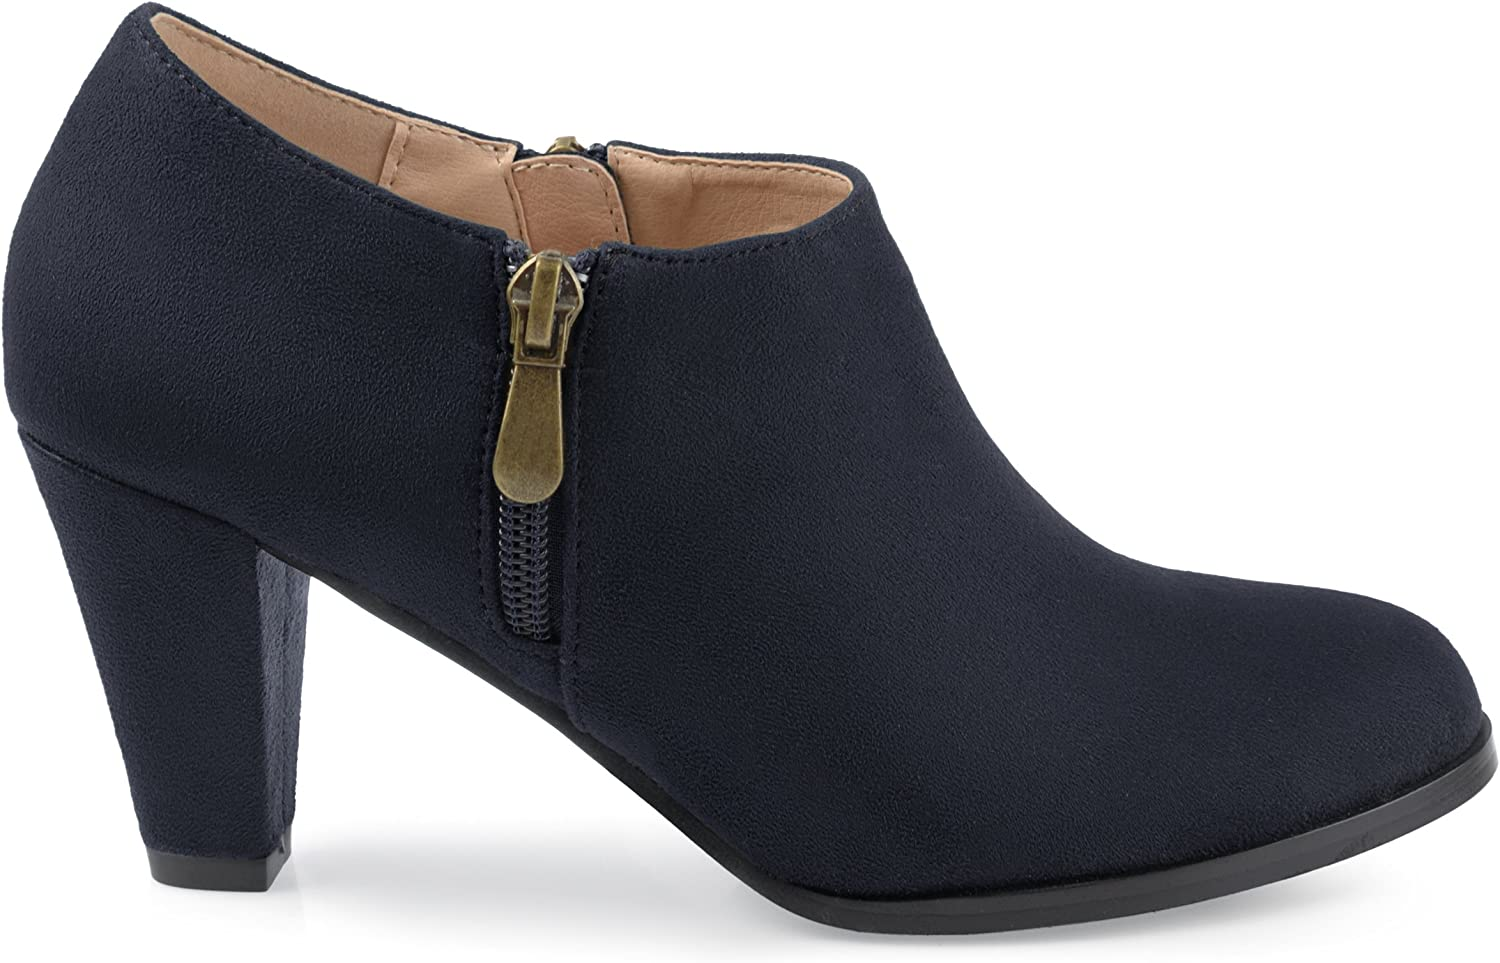 Brinley Co. Womens Sadra Faux Suede Low-Cut Comfort-Sole Ankle Booties Navy, 5.5 Regular US